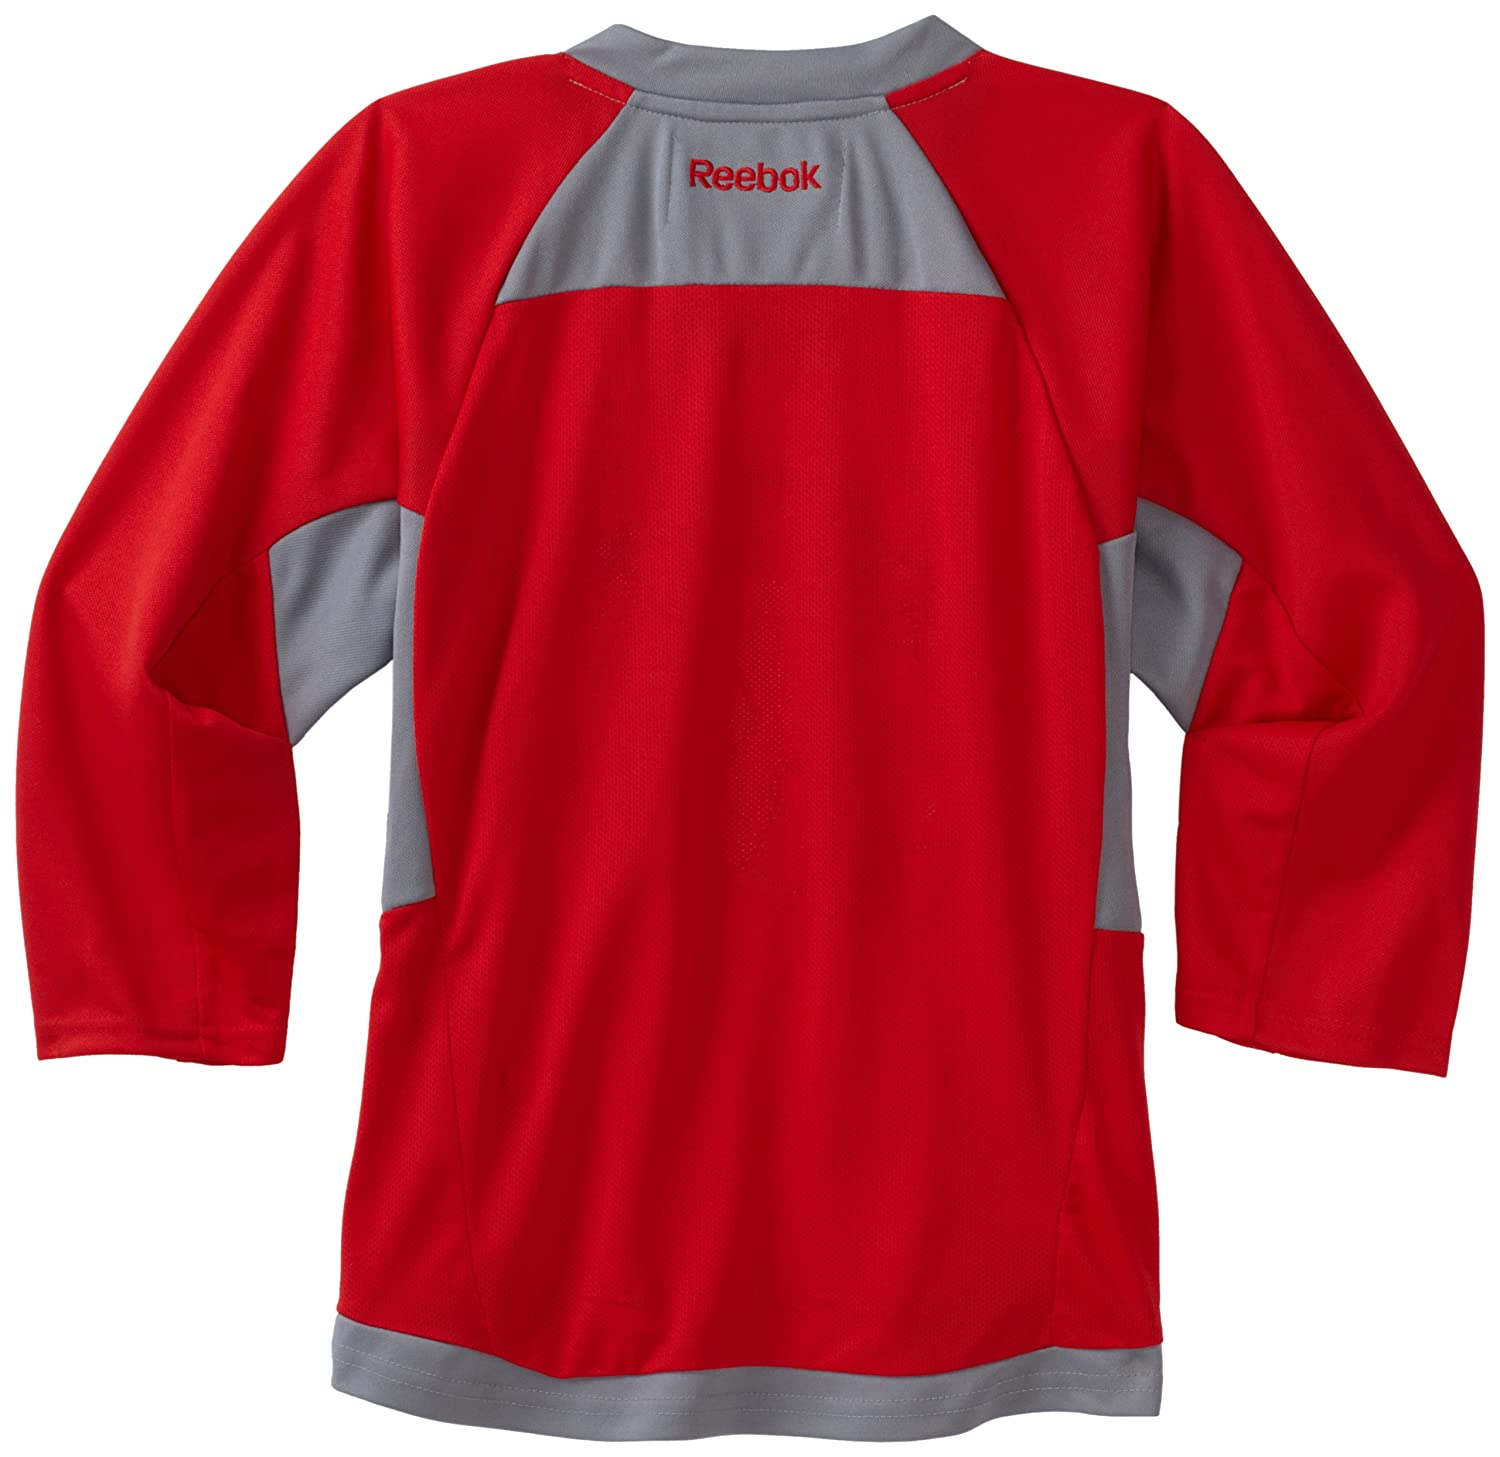 buy popular dceba 04e95 blackhawks youth practice jersey